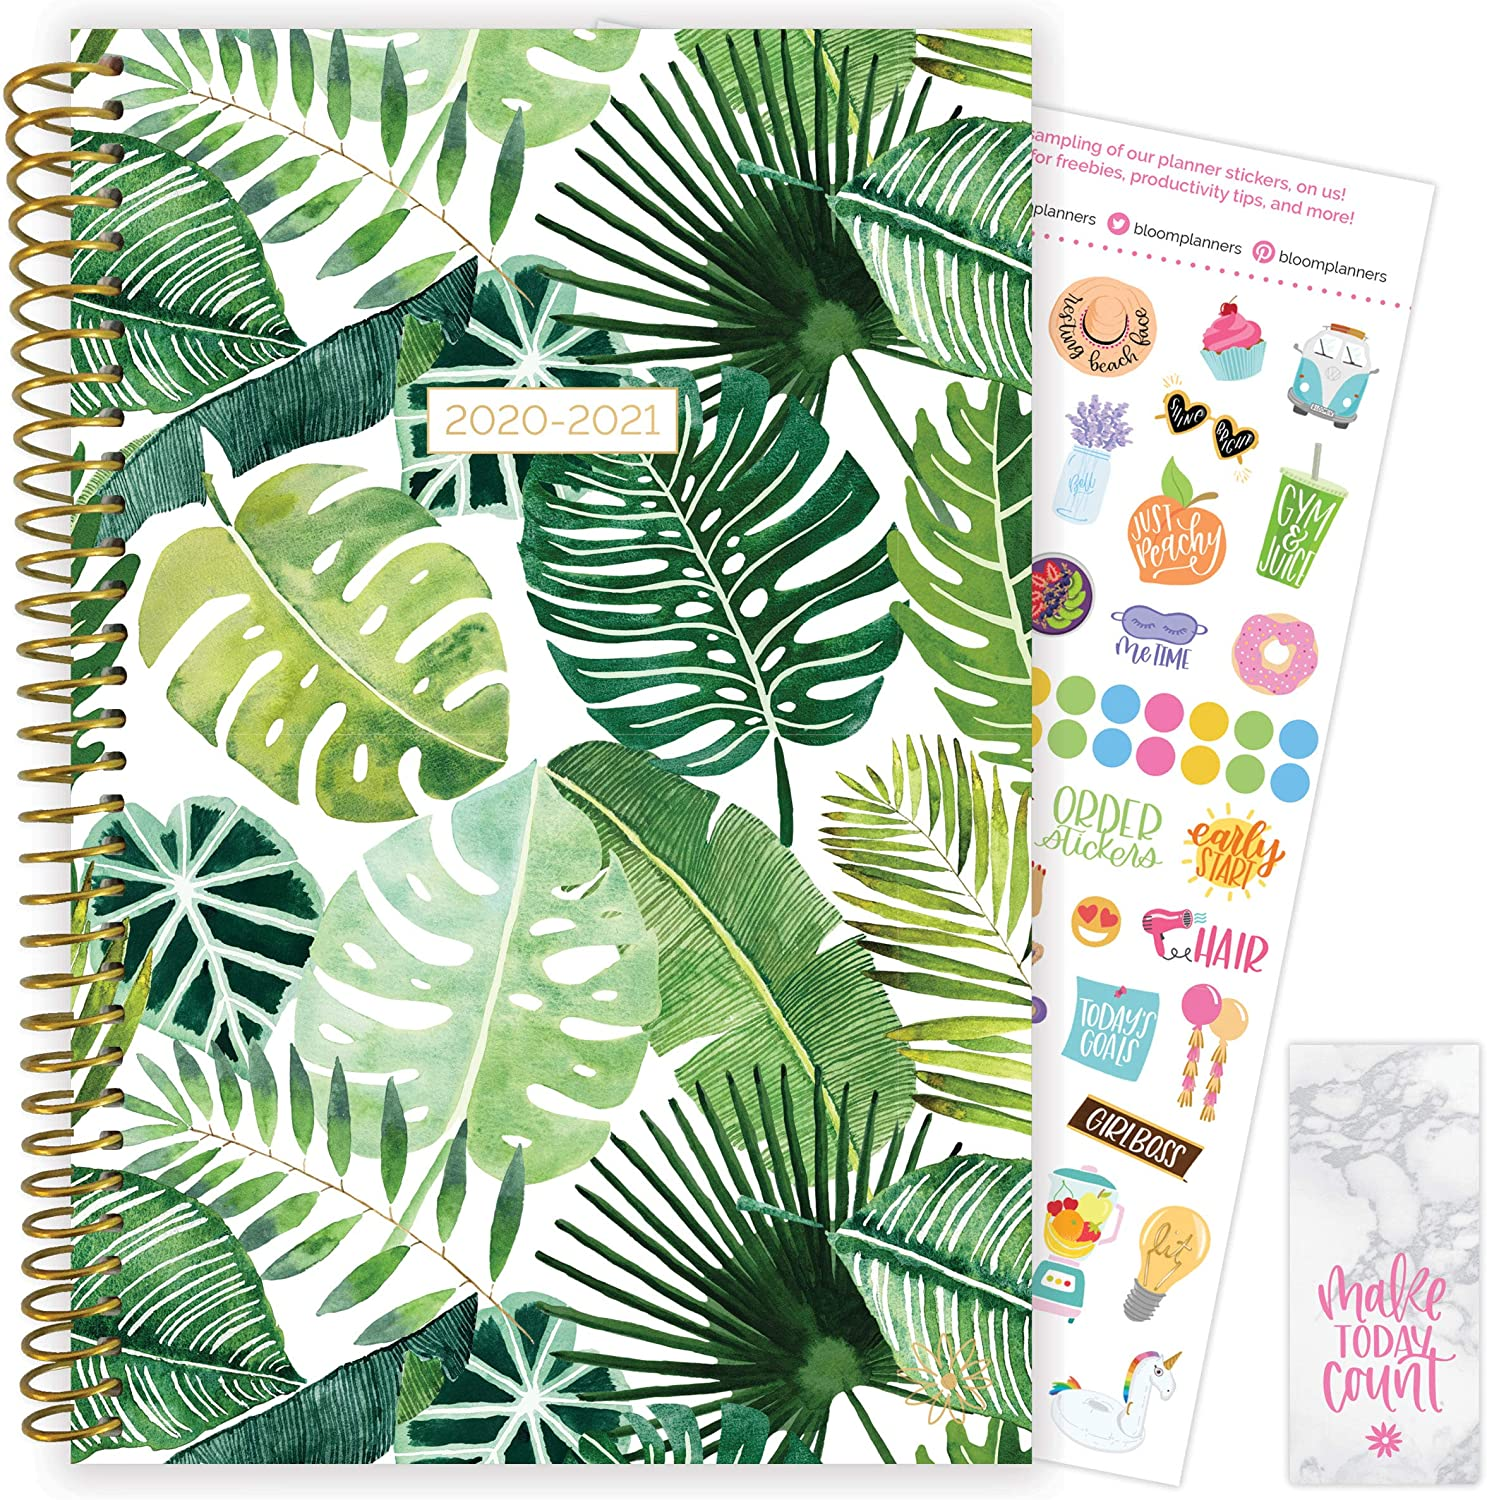 Factory outlet bloom daily planners 2020-2021 Academic Day Year Planner 2 Finally resale start July